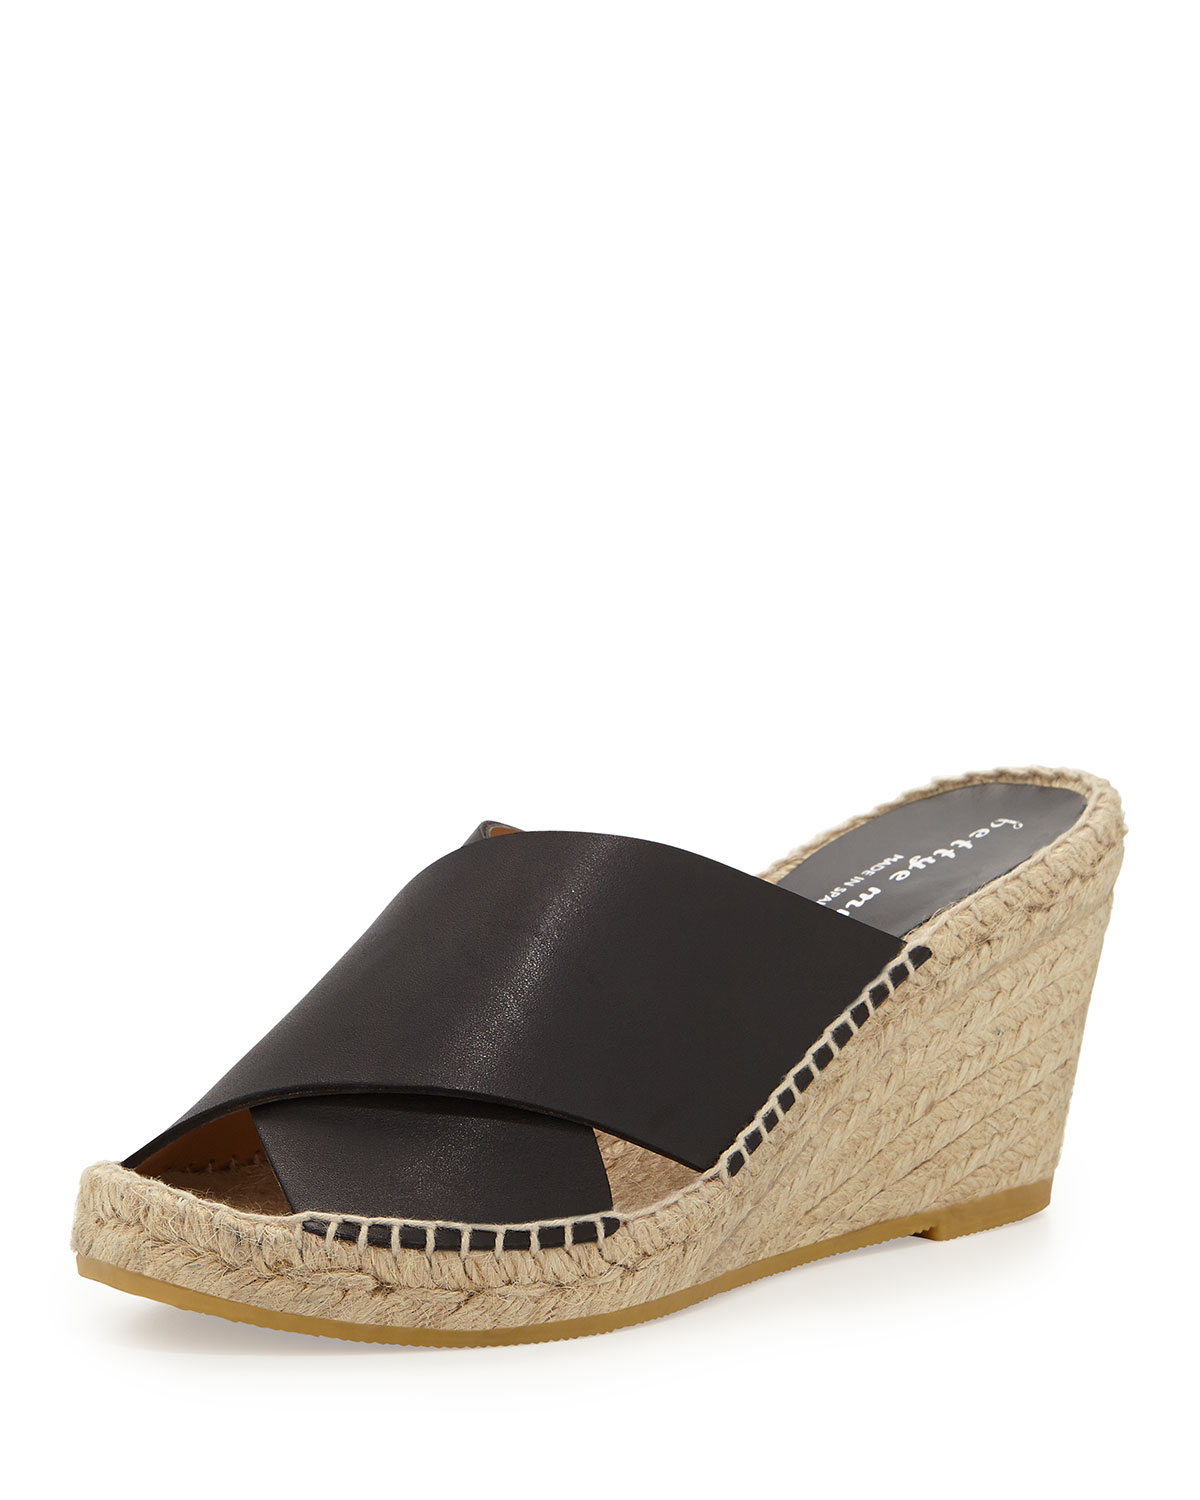 Bettye Muller Denim Espadrille Wedges newest sale online discount clearance store visa payment sale online 2015 for sale cheap best store to get Q4PzEV28g